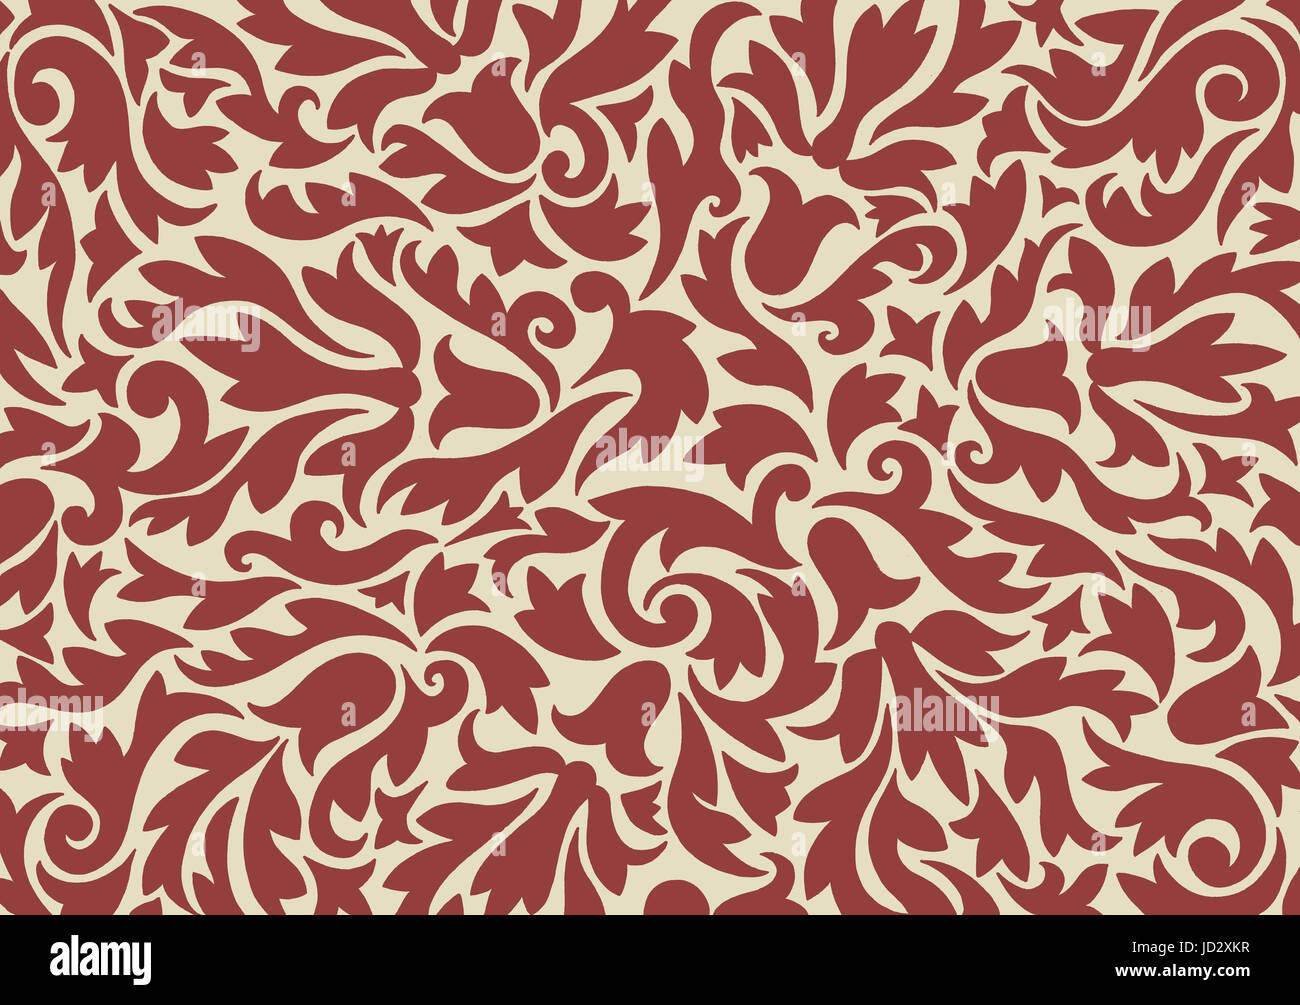 A hand drawn non-repeating pattern inspired by medieval designs - Stock Image